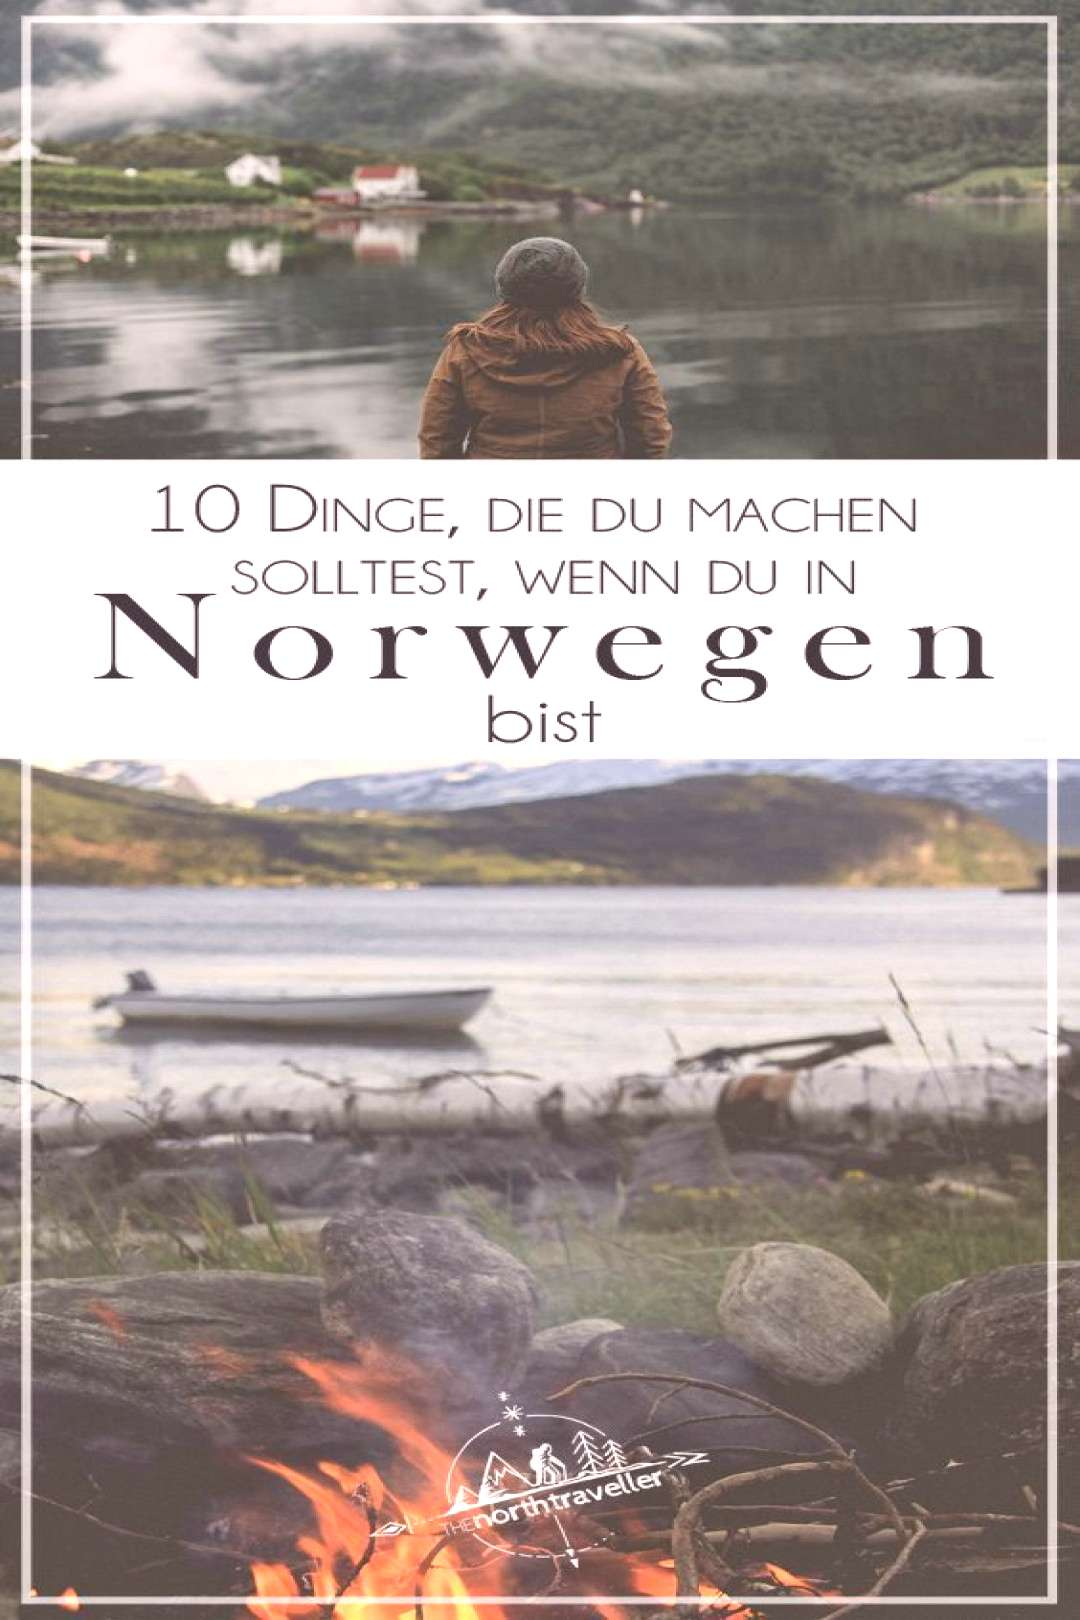 10 things you should do when you are in Norway - The Northtraveller - The blog about Norw - 10 thi